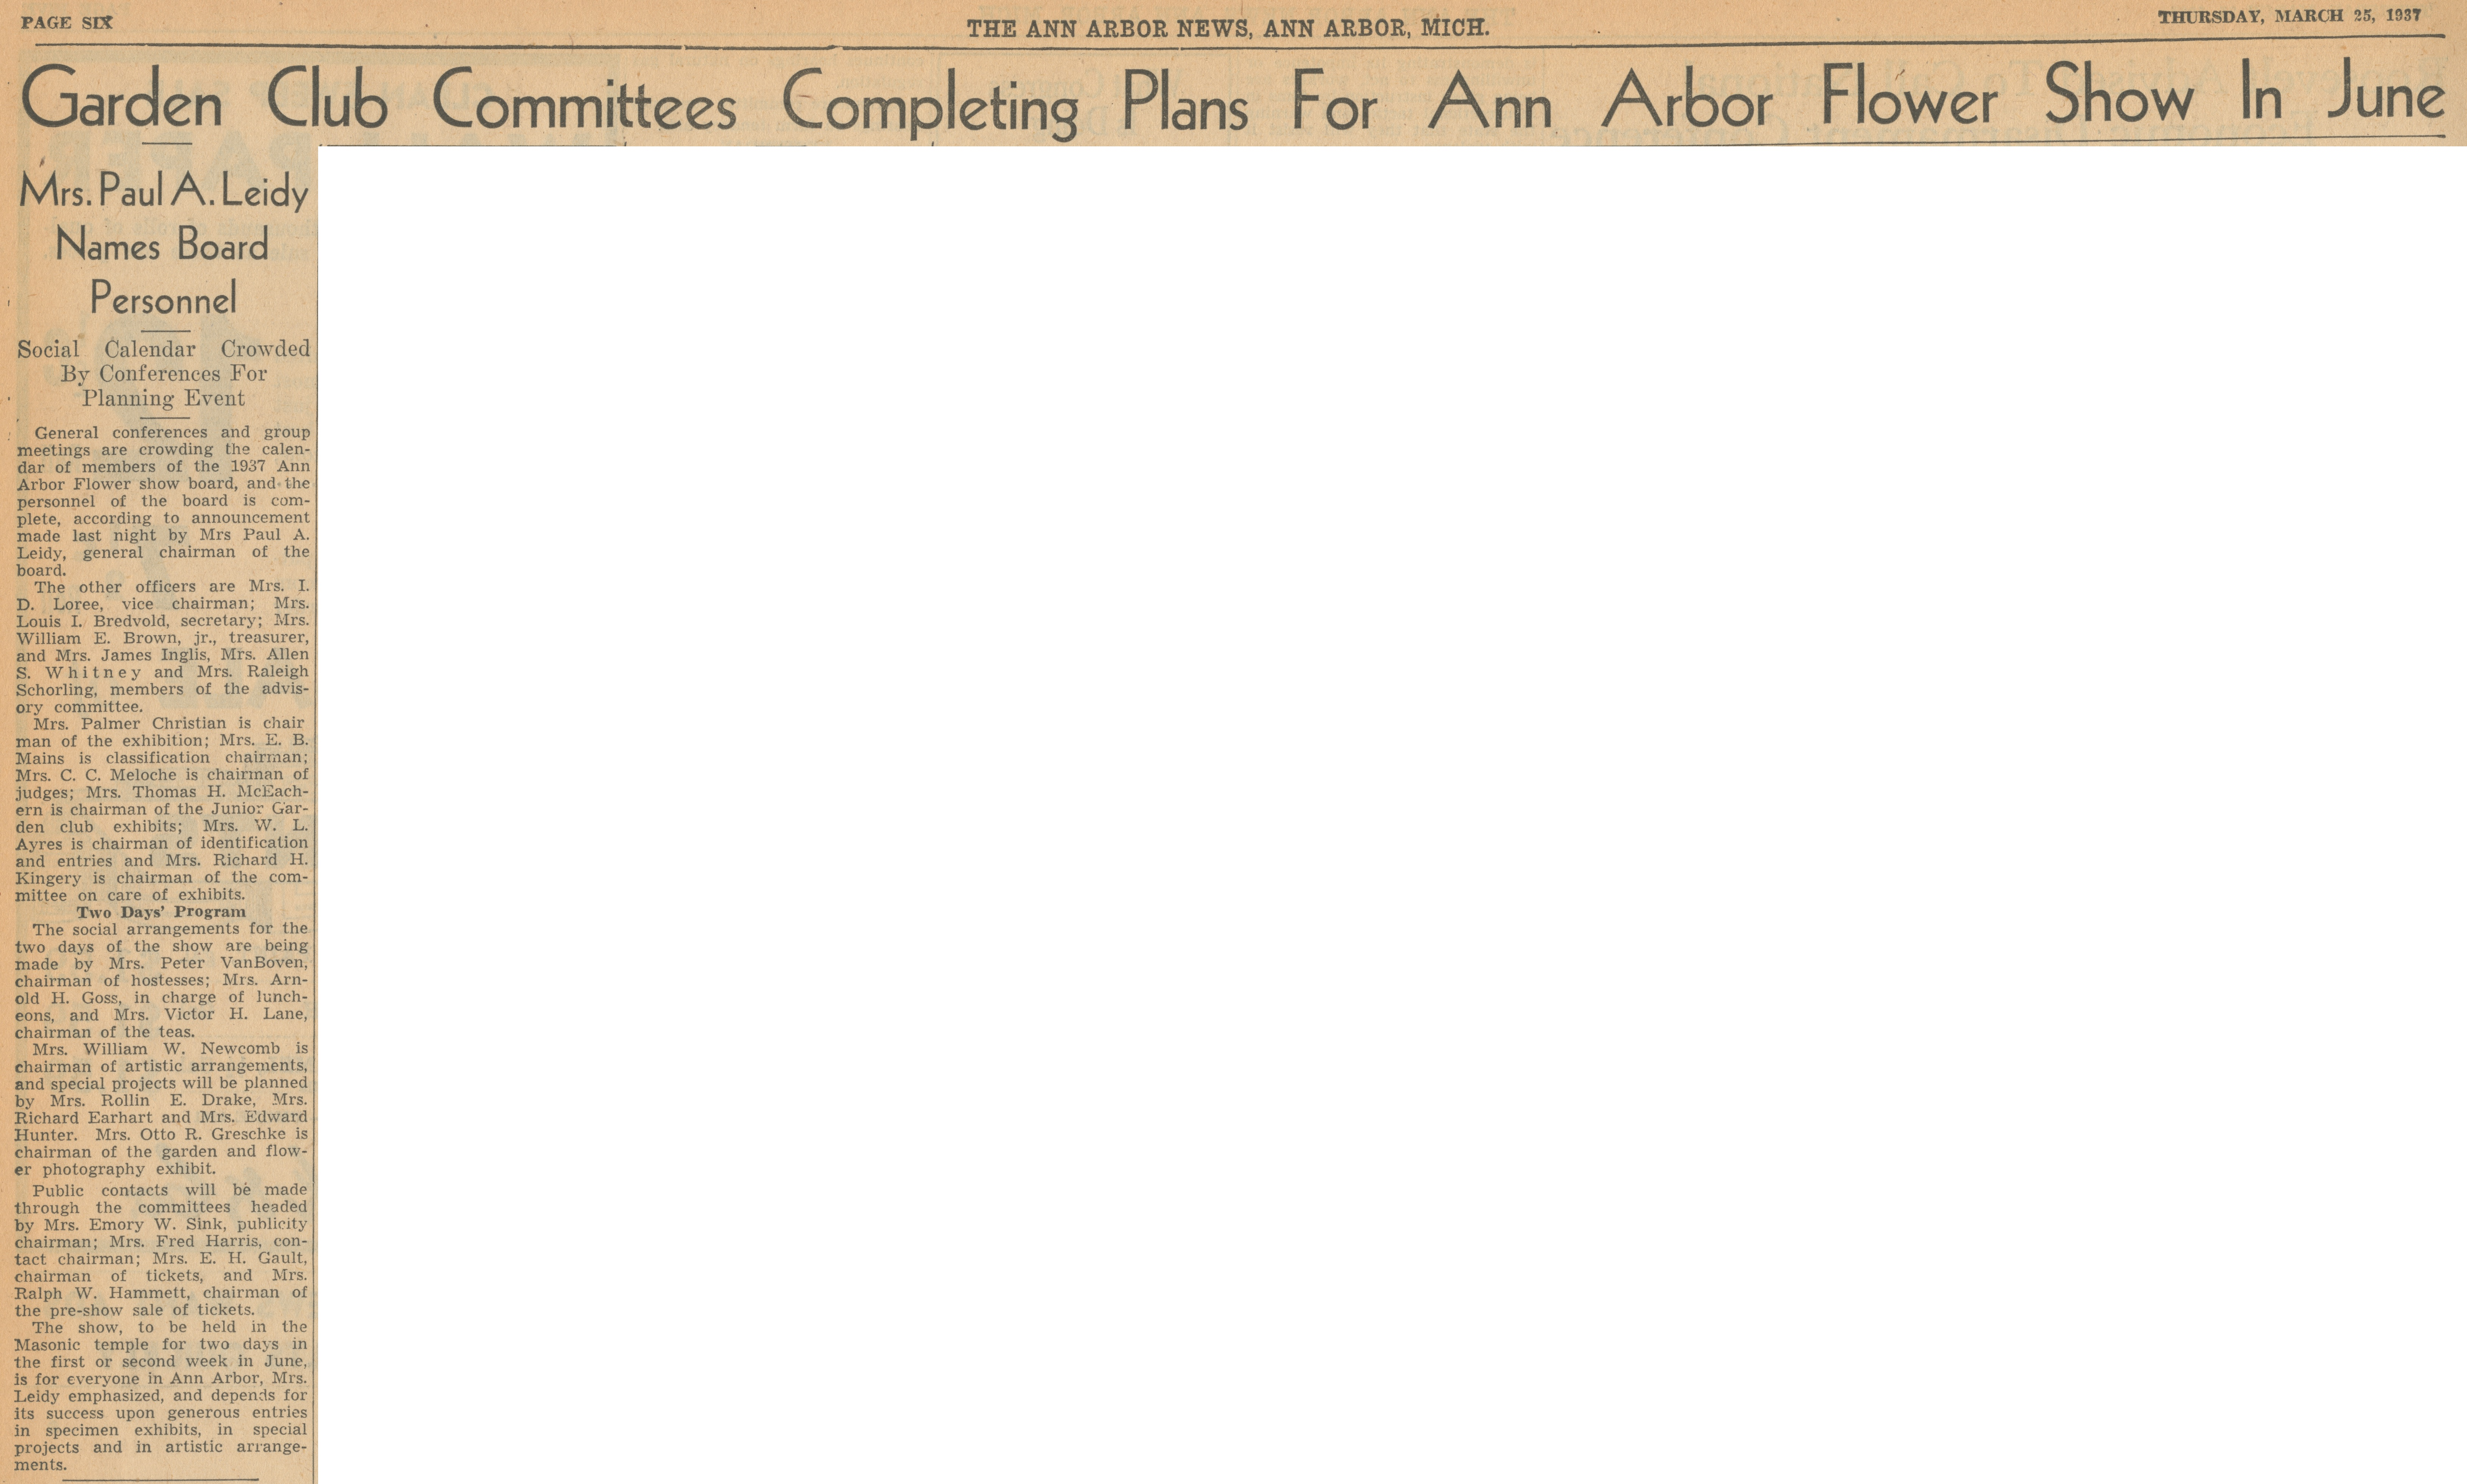 Garden Club Committees Completing Plans For Ann Arbor Flower Show In June - Mrs. Paul A. Leidy Names Board Personnel - Social Calendar Crowded By Conferences For Planning Event image